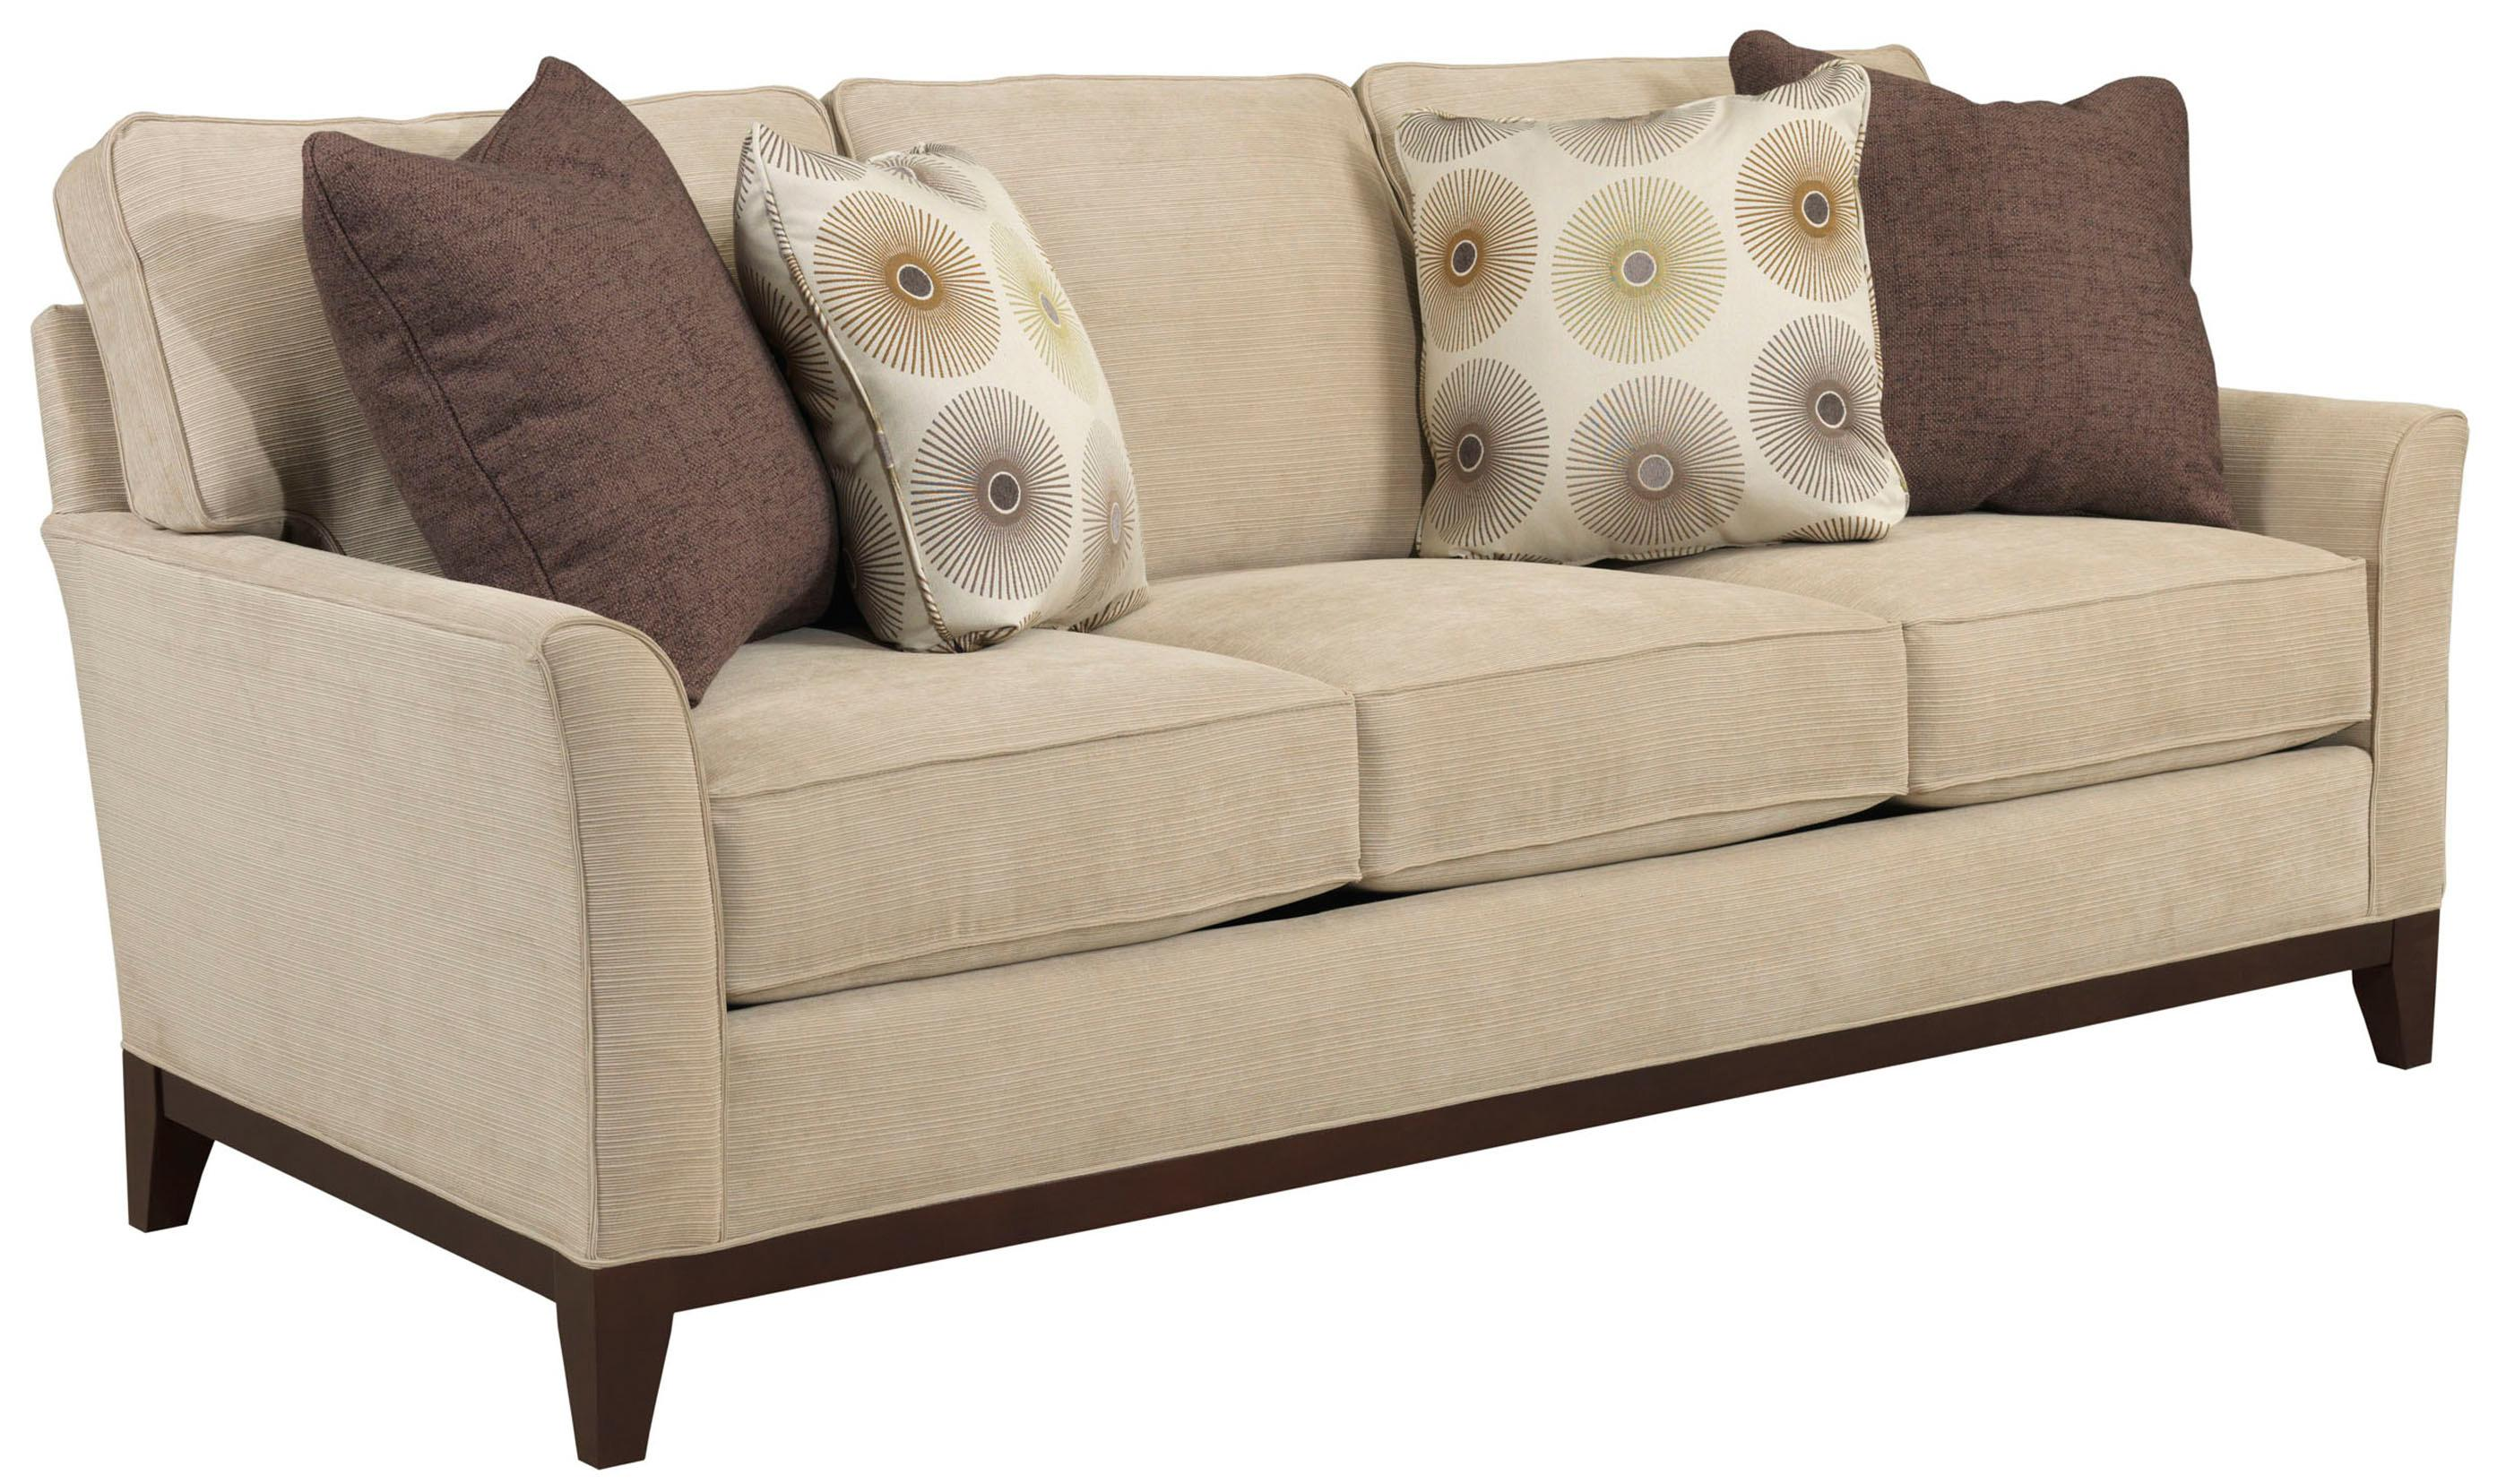 Broyhill Furniture Perspectives Stationary Sofa - Item Number: 4445-3-8510-82